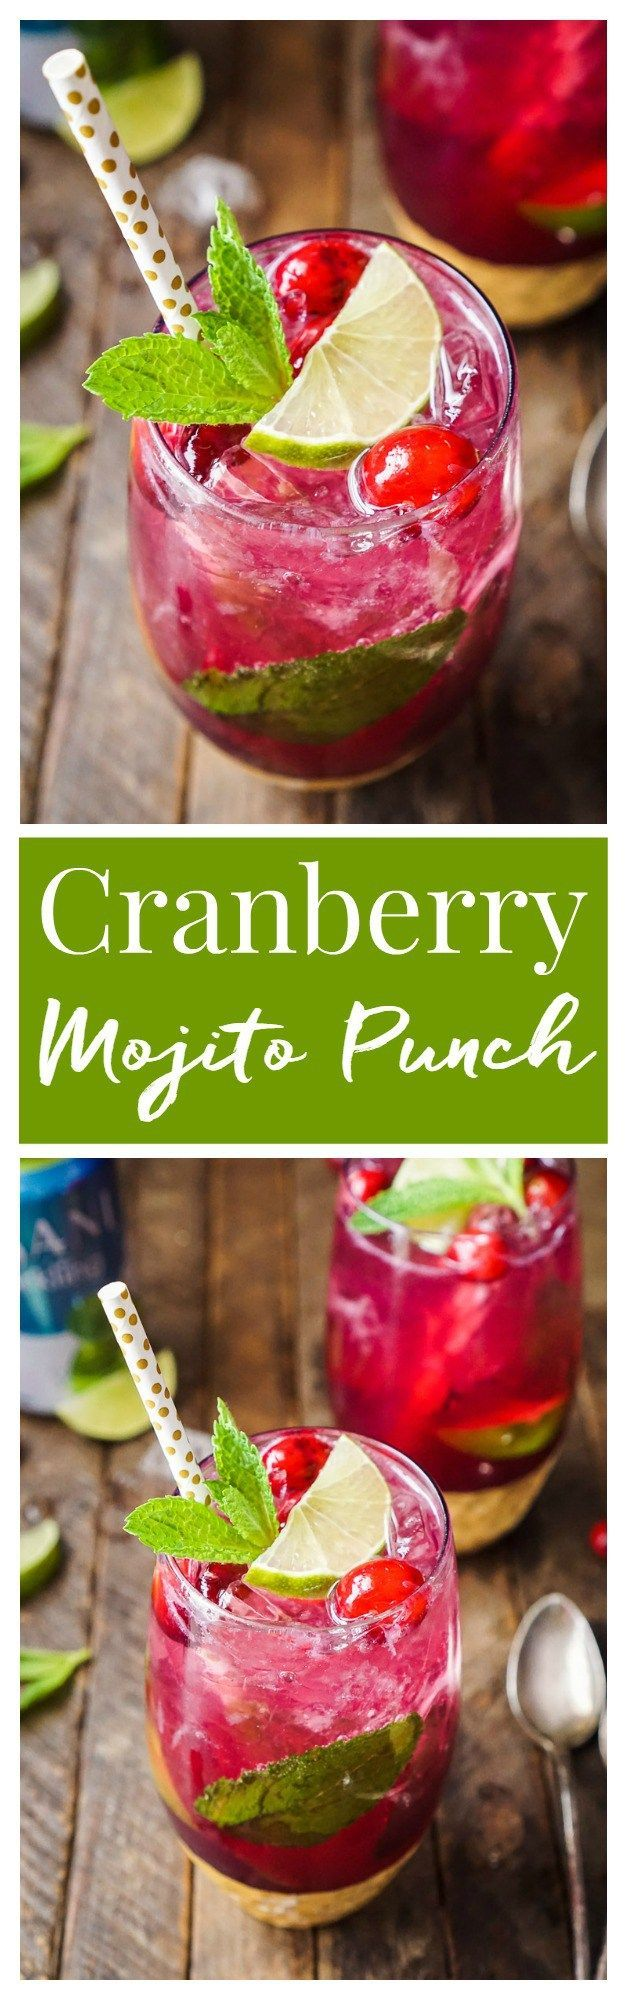 This Cranberry Mojito Punch Is So Refreshing And Flavorful